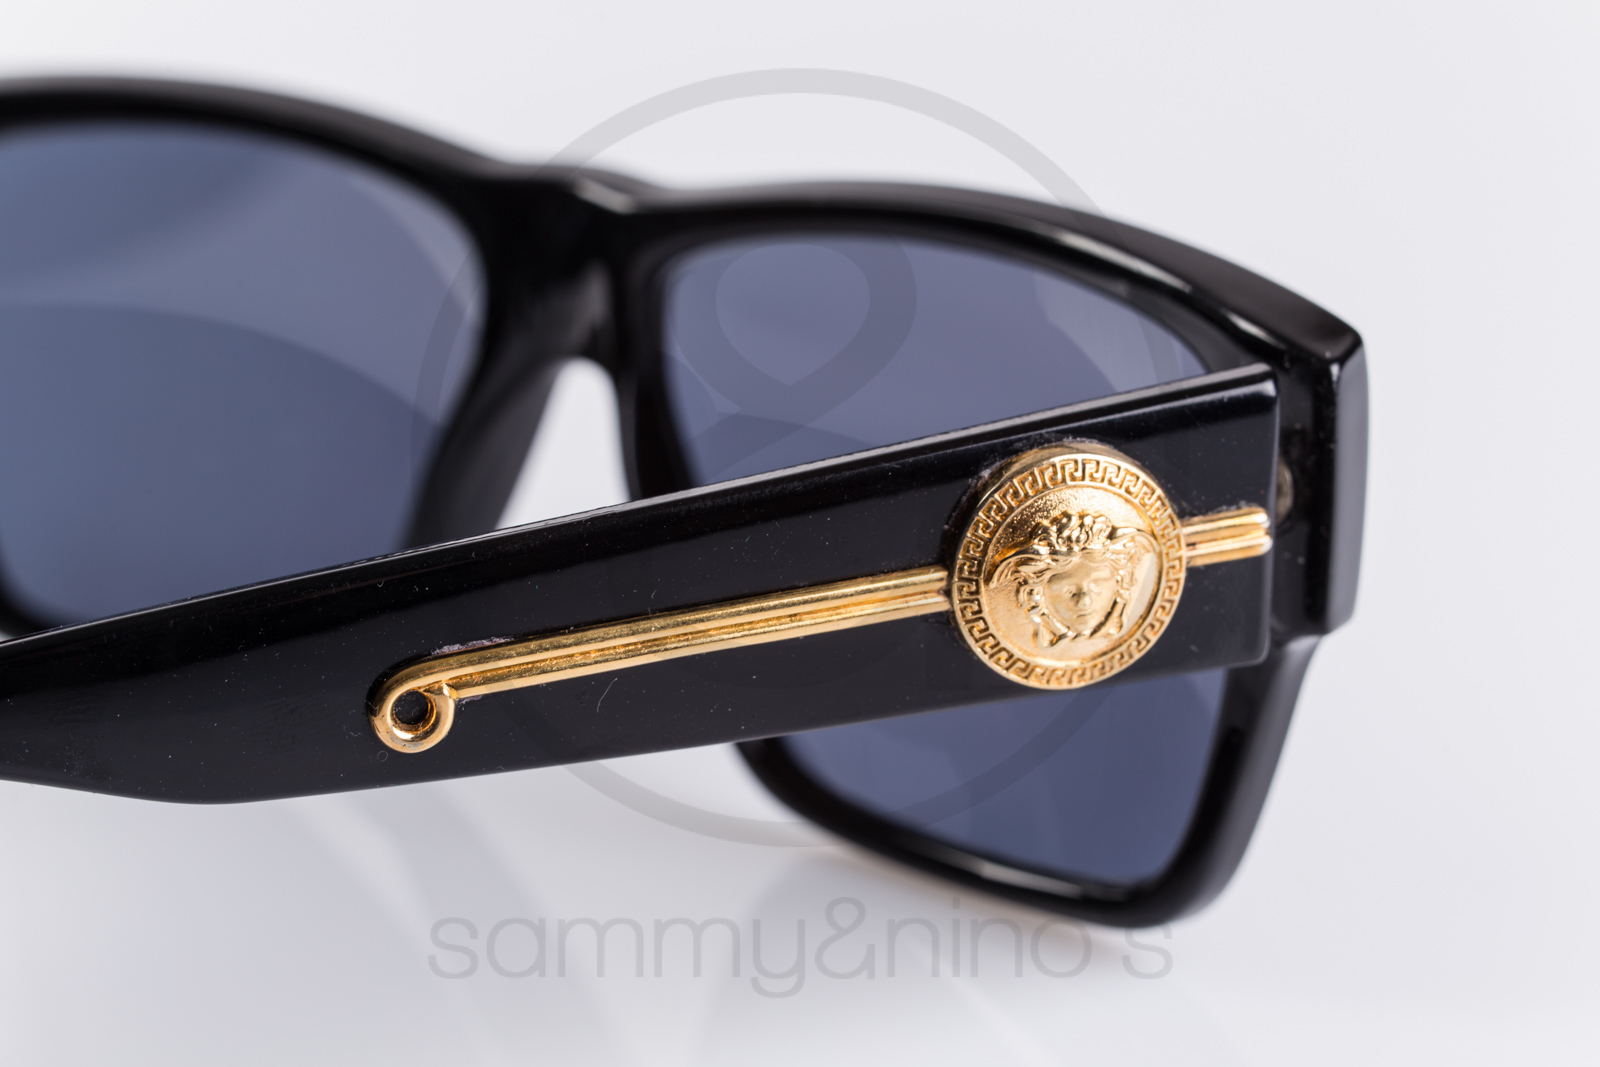 e576f9c5359 Fake Gianni Versace Sunglasses Shops